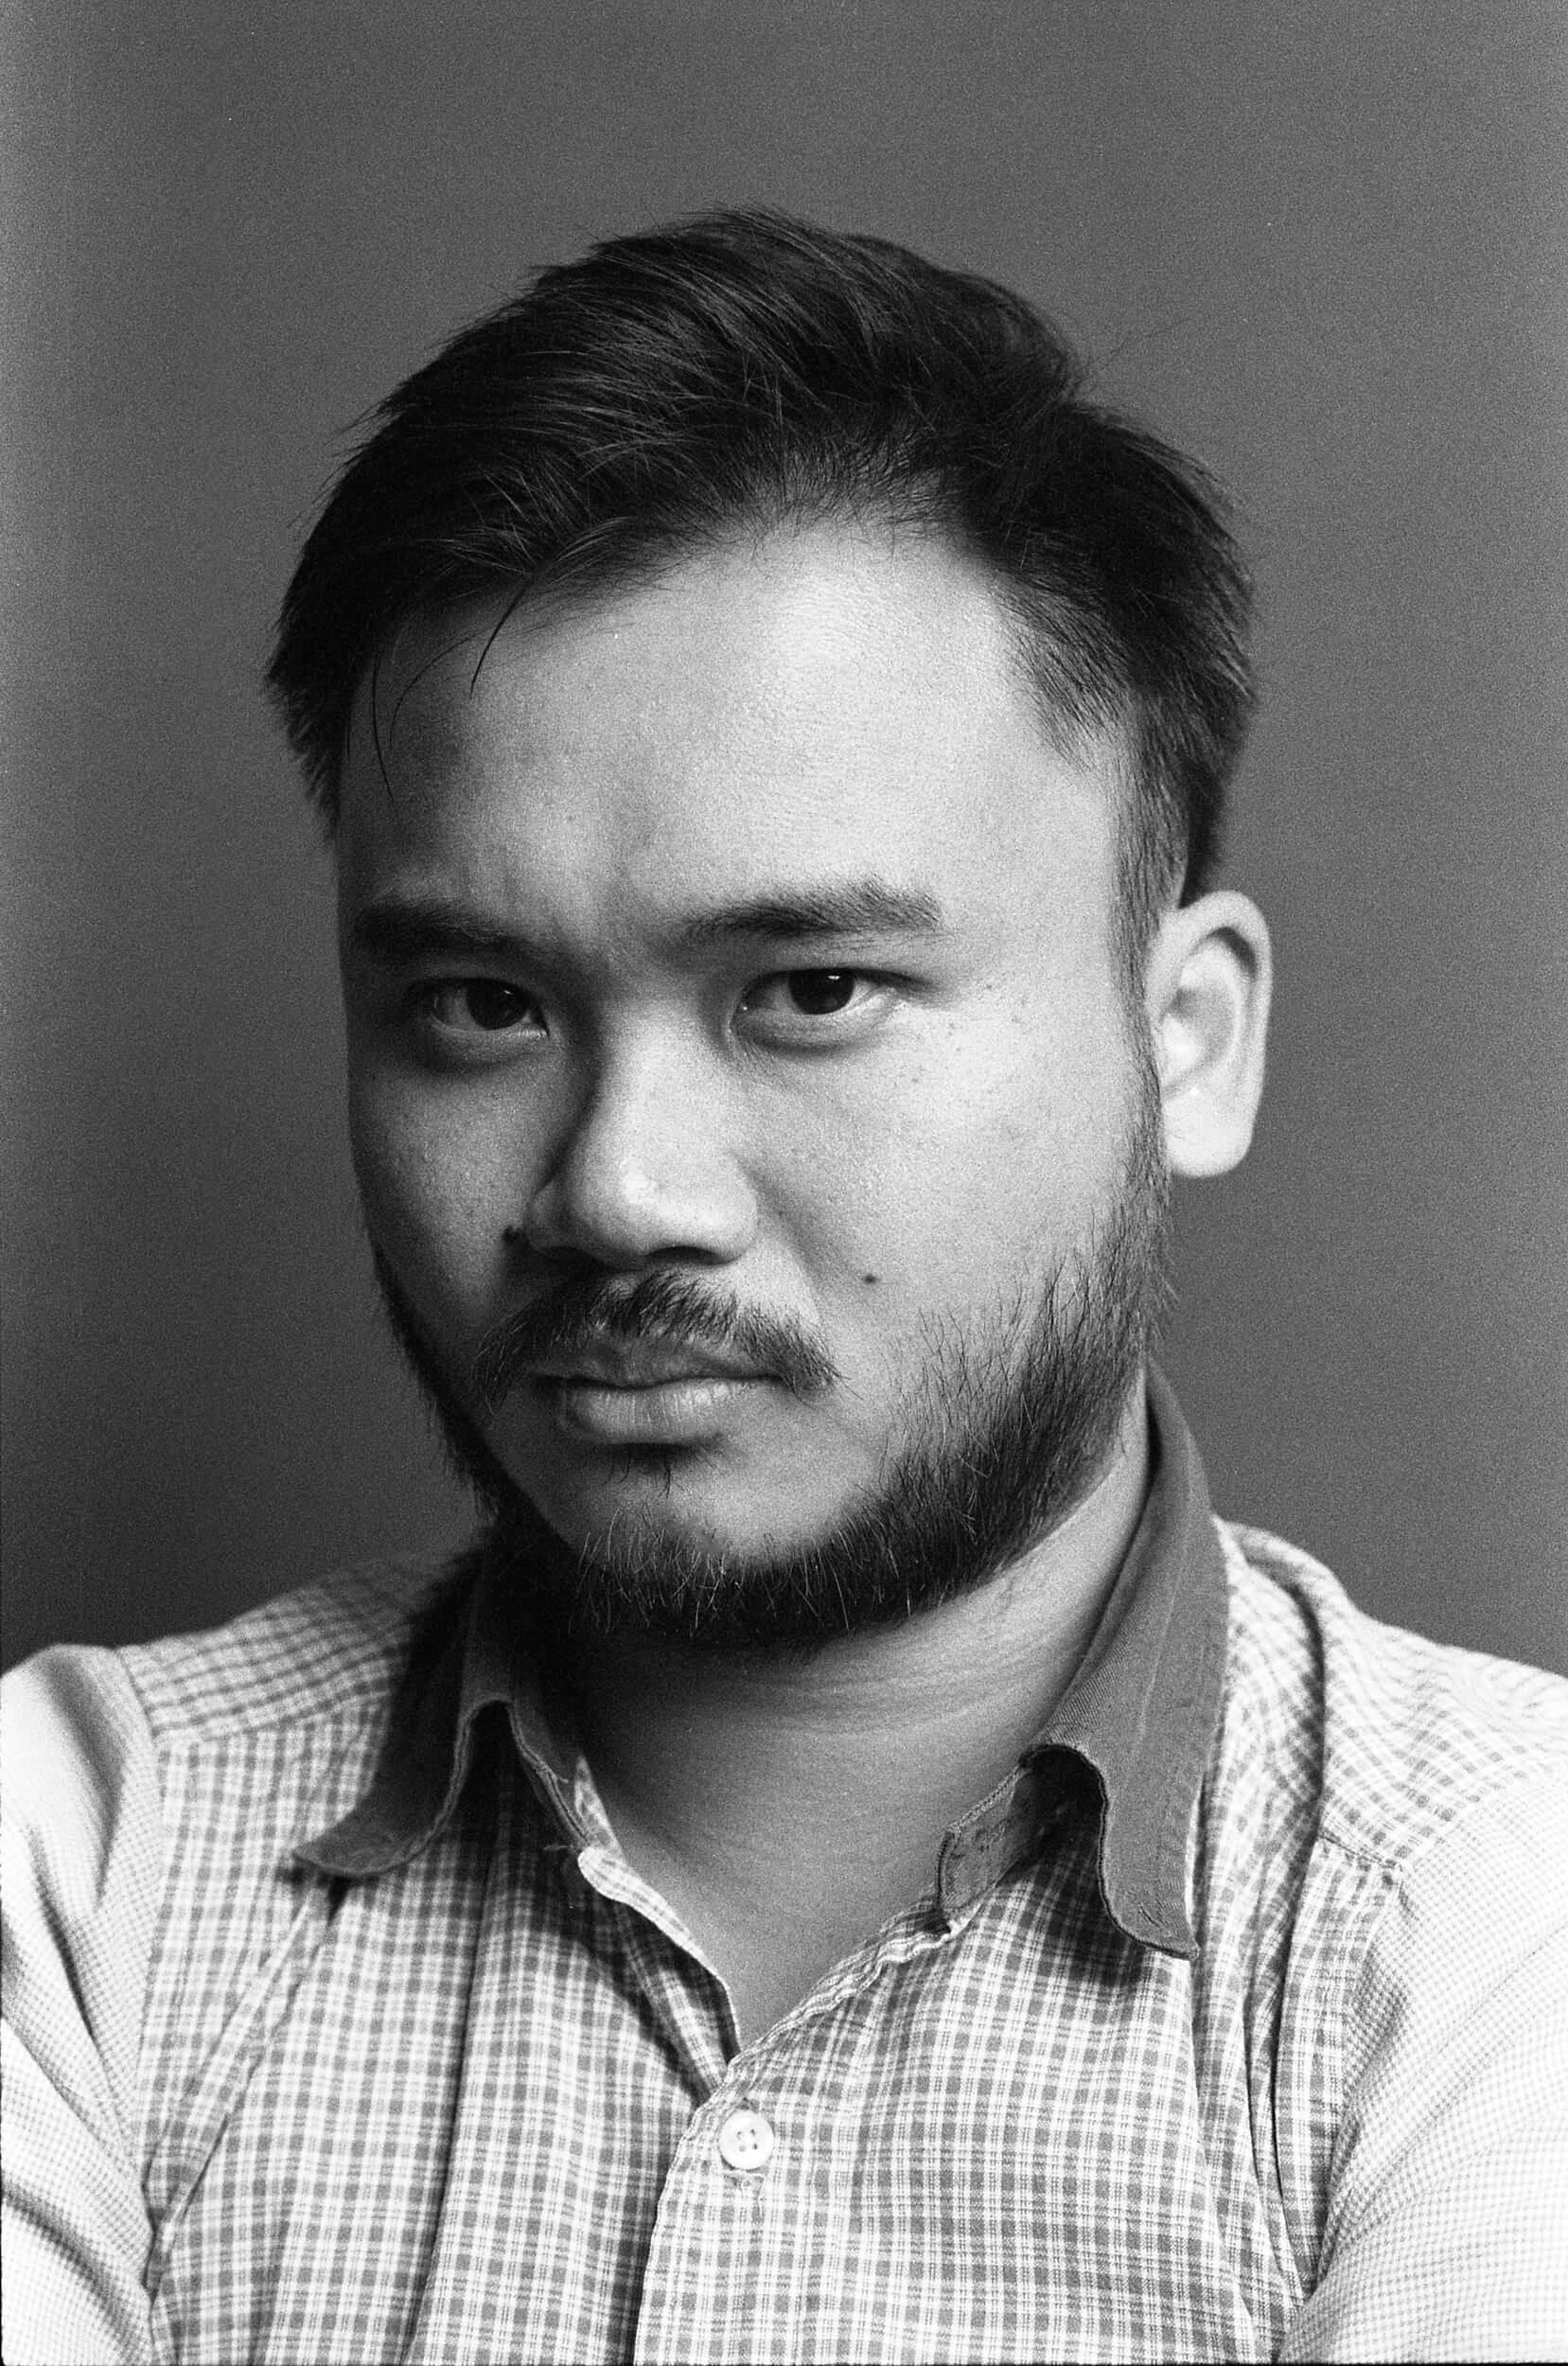 Bryan-Bryan-chan-media-Studio-flash-Studio-flash-photography-Black-and-white-BW-B&W-film-analog-snap-snapshot-night-tone-smooth-self-develop-HC-110-Kentmere-400-iso400-黑白-portrait-Nikon-f100-85mm-f1.8D-1.8